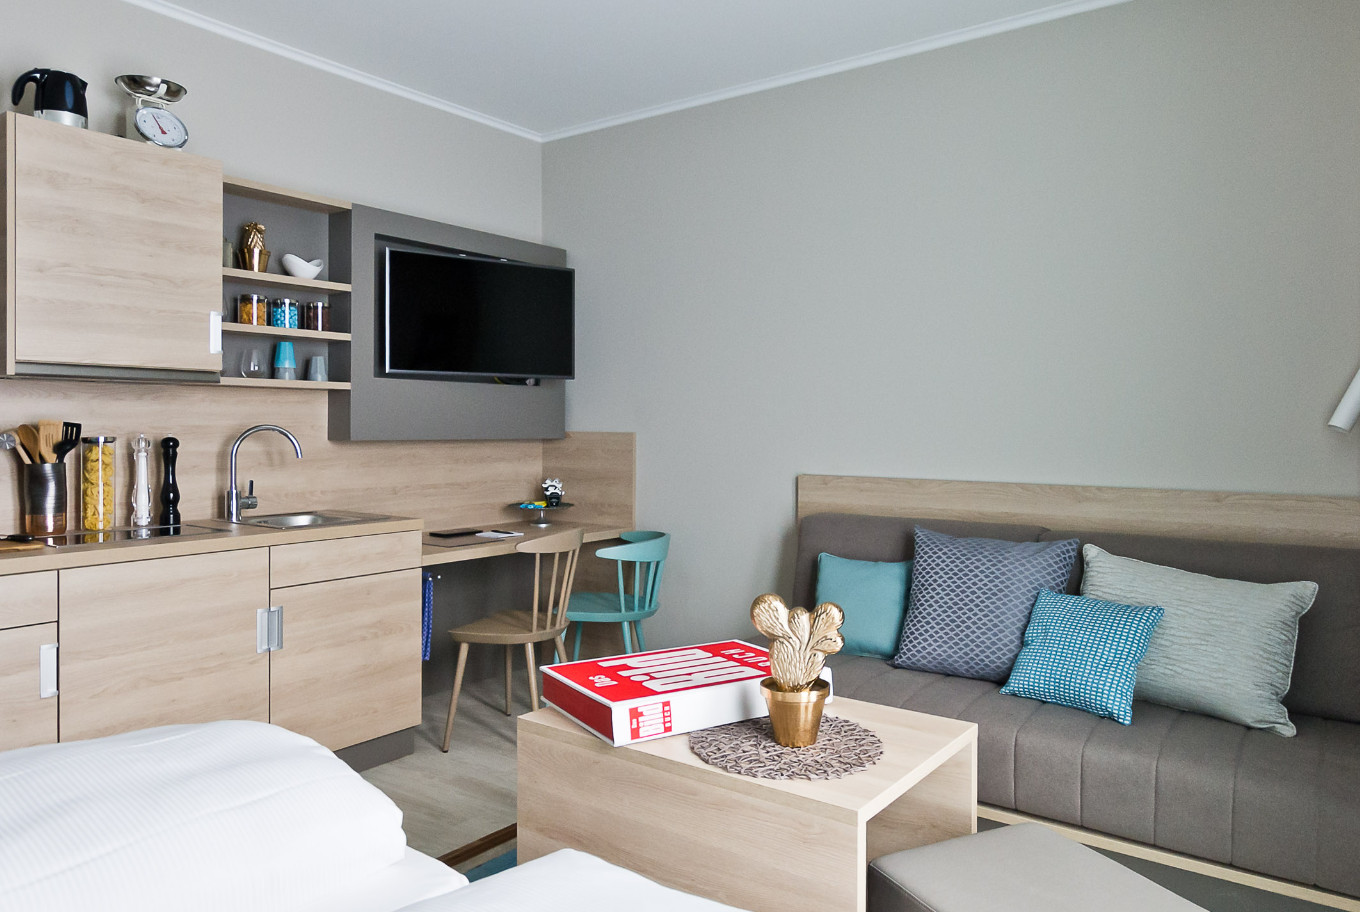 Living on time will be made as comfortable as possible in our rooms.